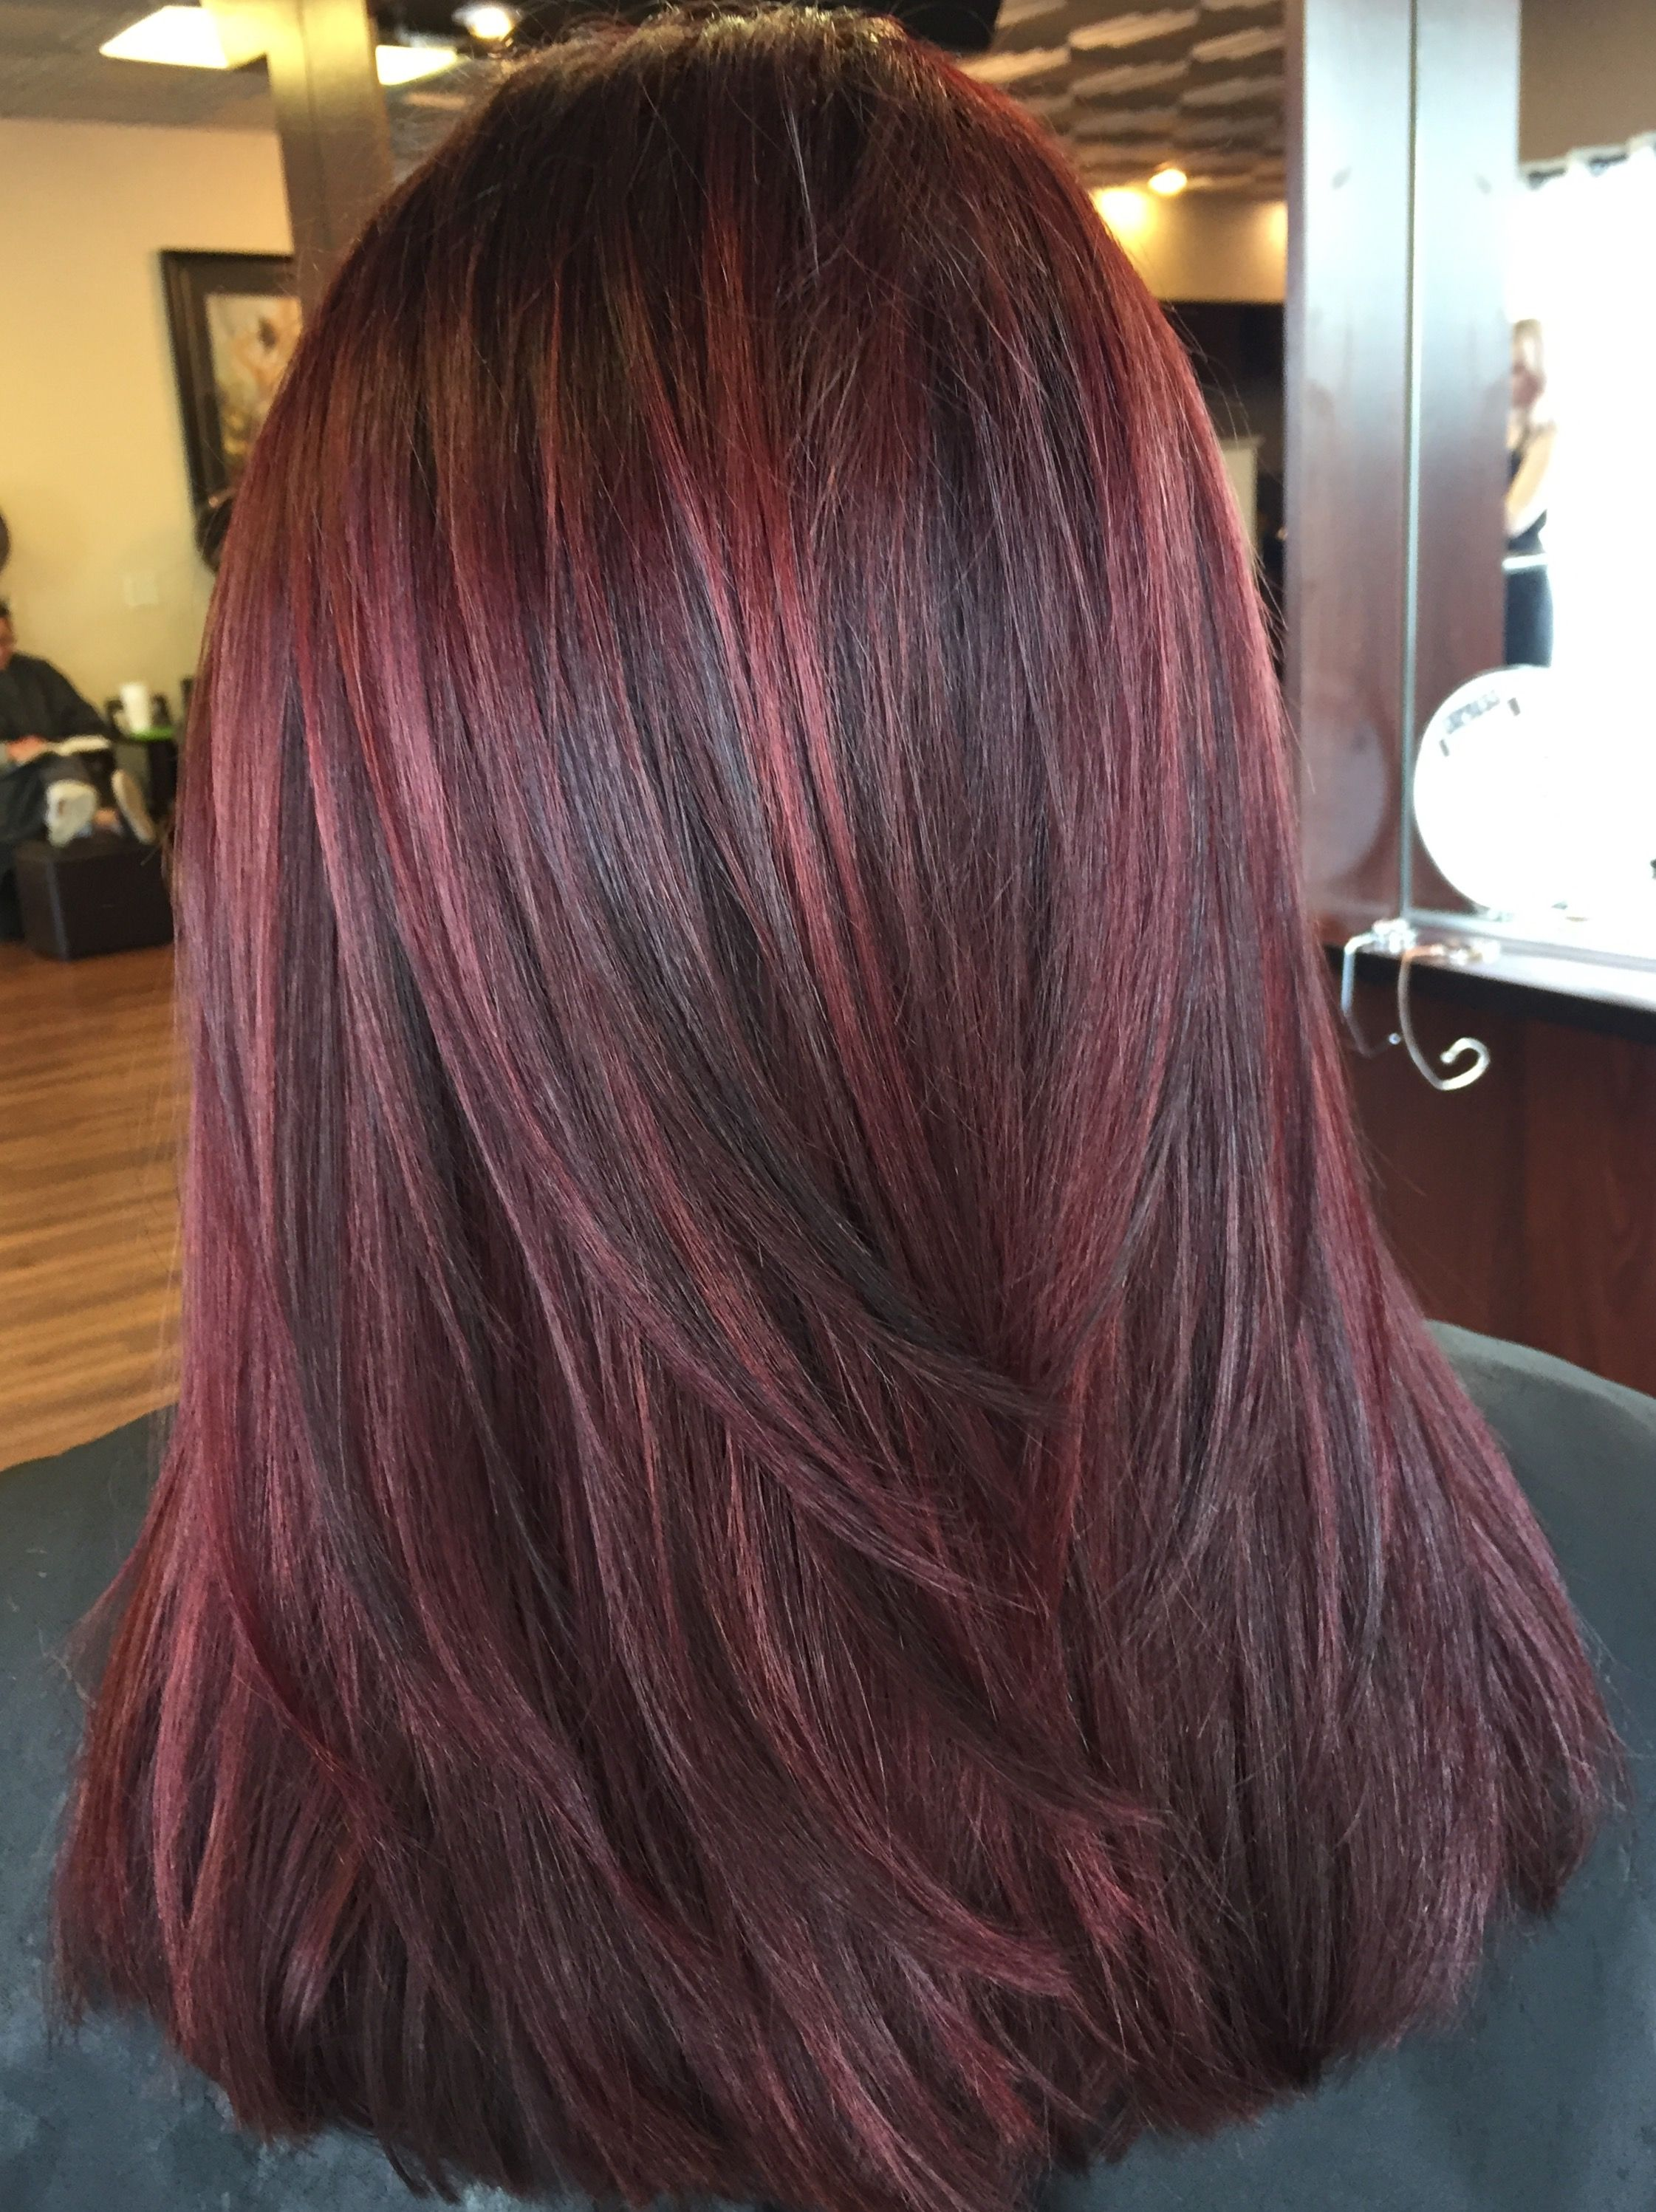 Reds Lowlights Dimensional Red Red Highlights In Brown Hair Hair Color Burgundy Brunette Hair Color